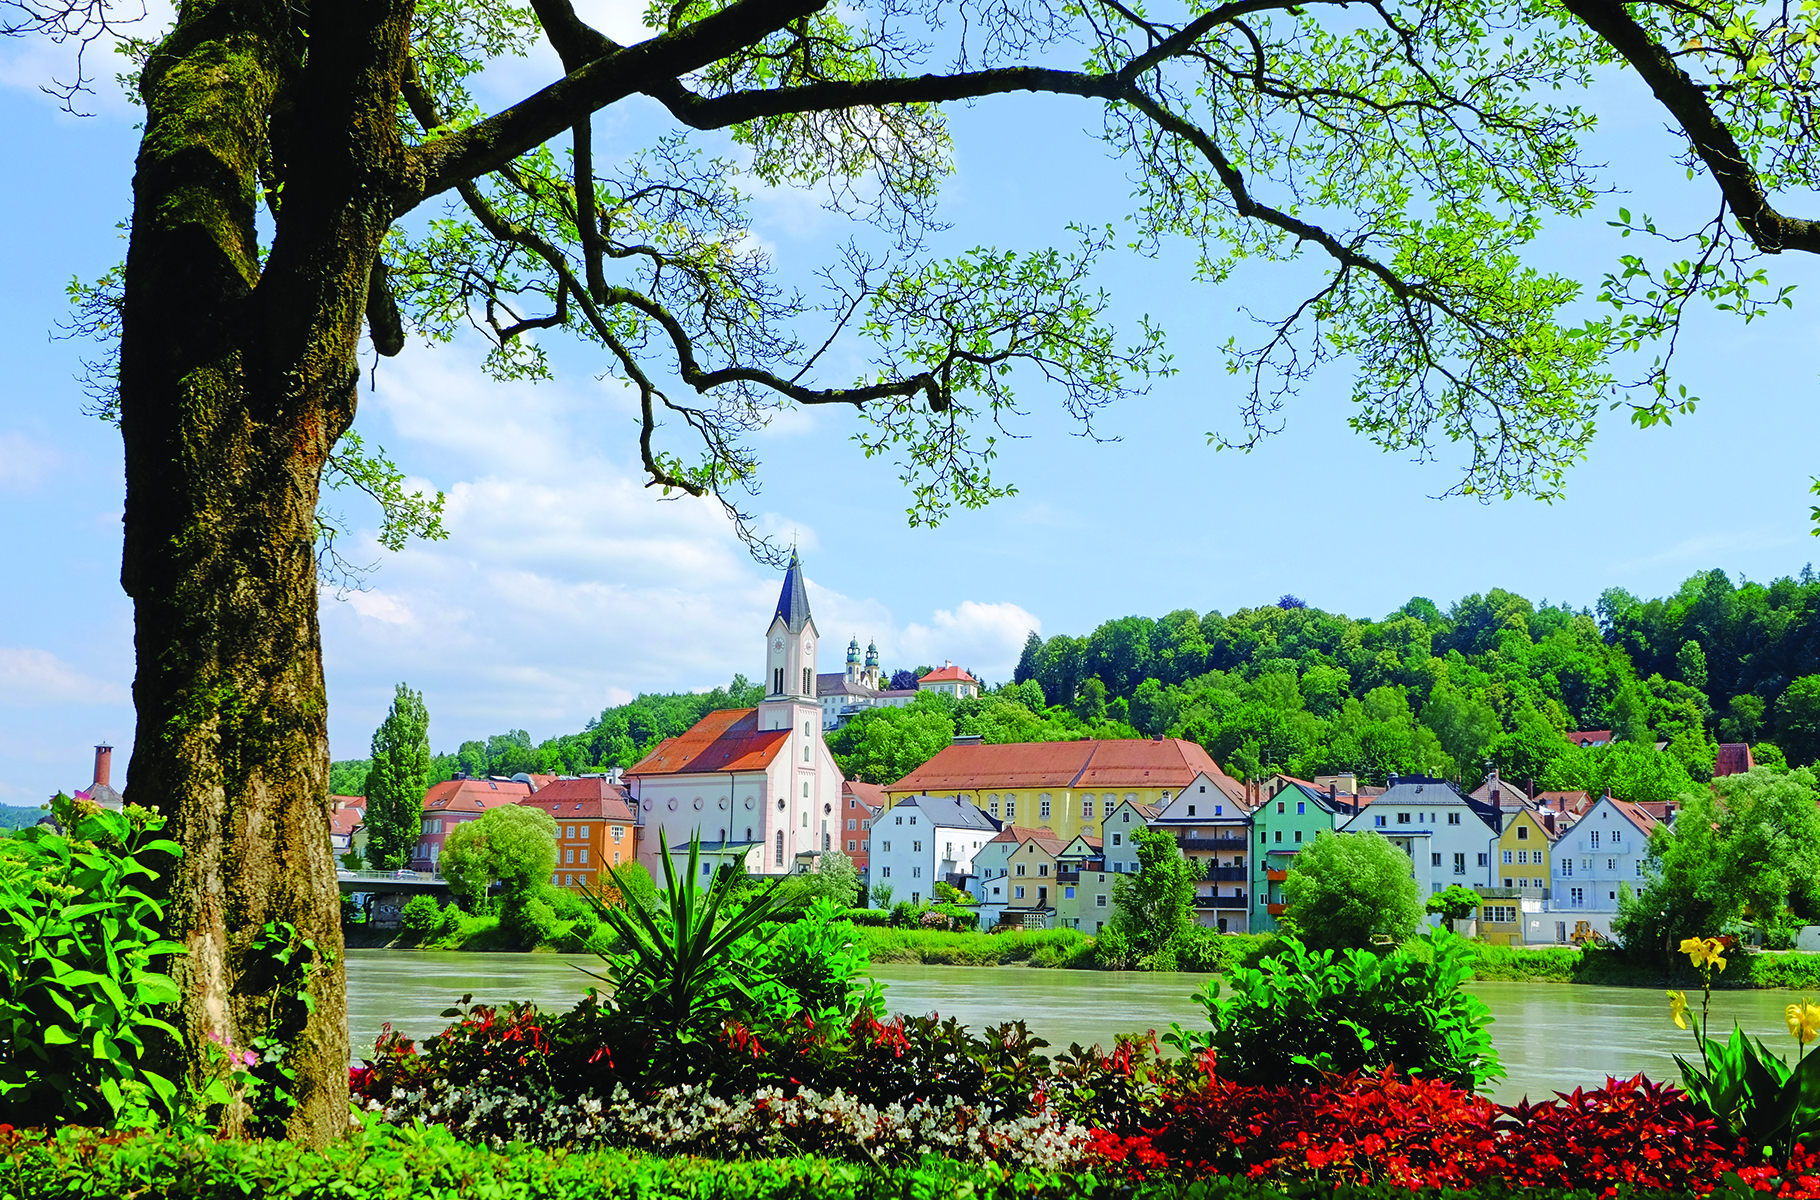 Town surrounded by greenery with homes and churches.